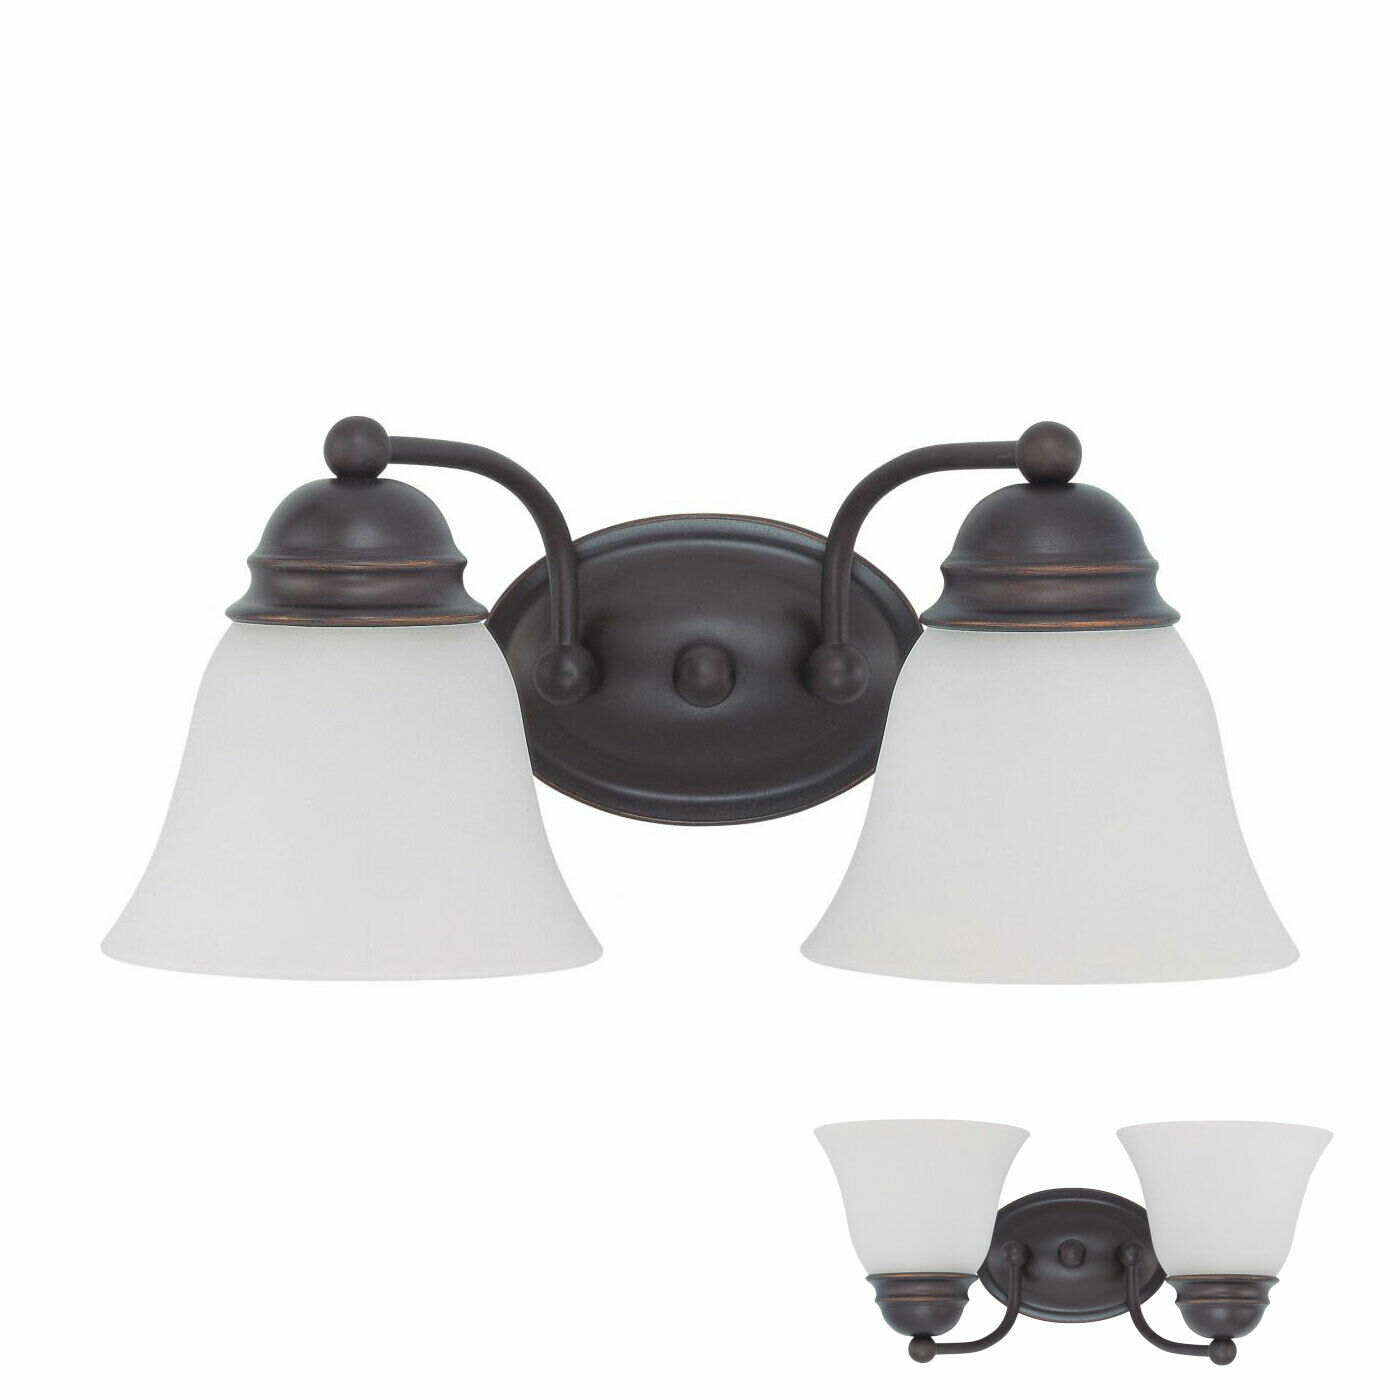 2 Bulb Bathroom Vanity Light Fixture With Glass Globes Oil Rubbed Bronze For Sale Online Ebay